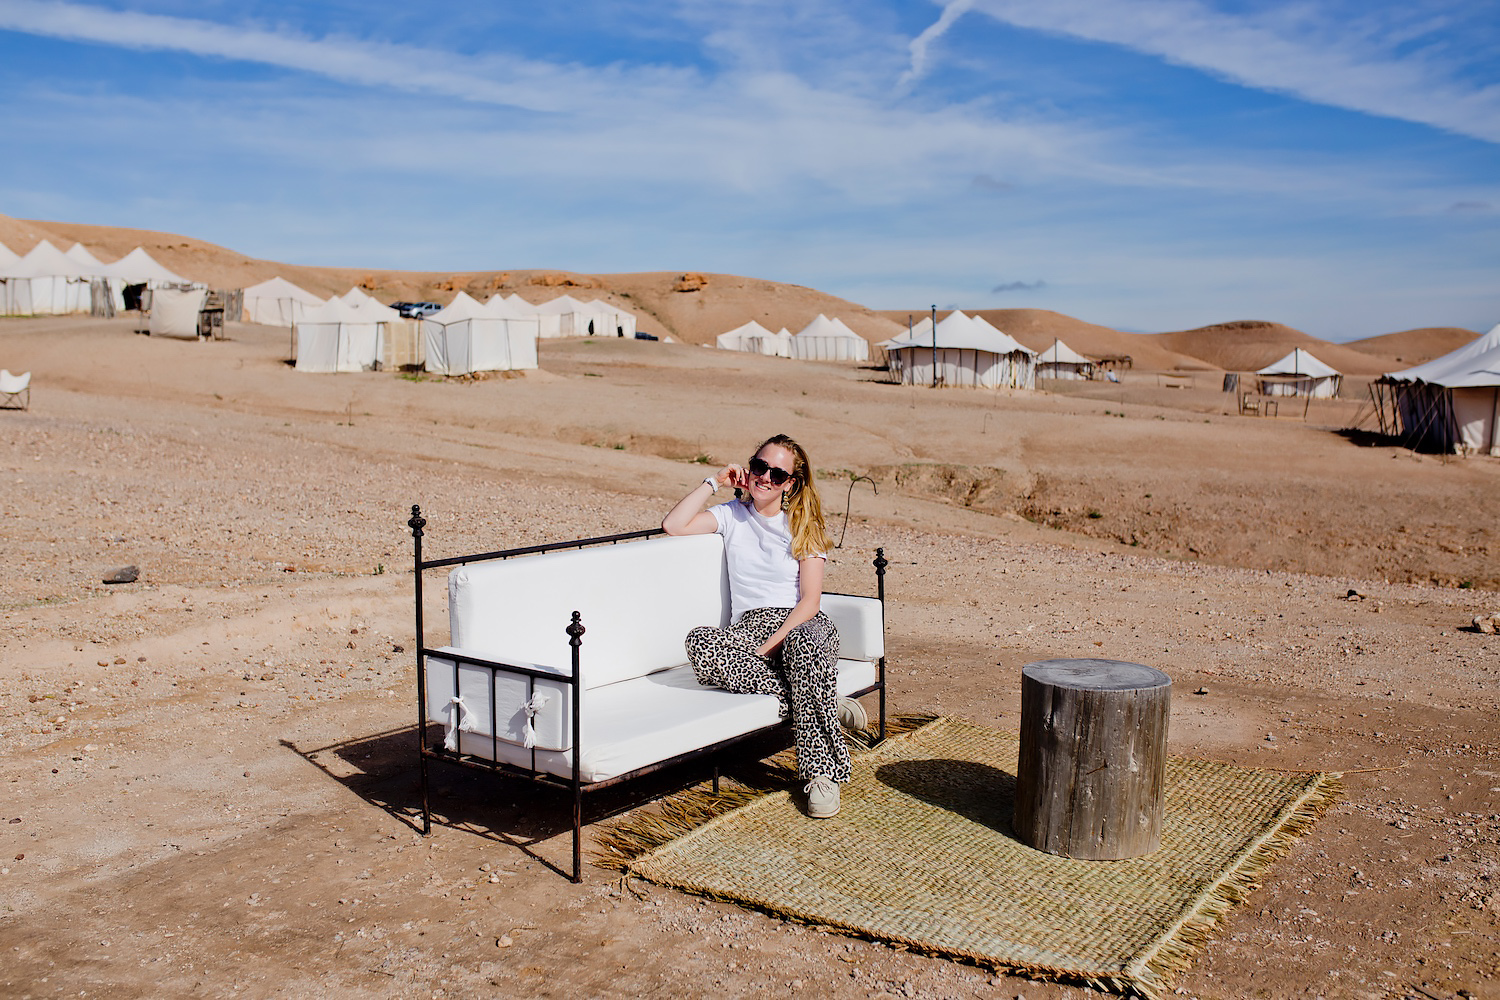 The Stone Desert experience: Glamping at SCARABEO CAMP